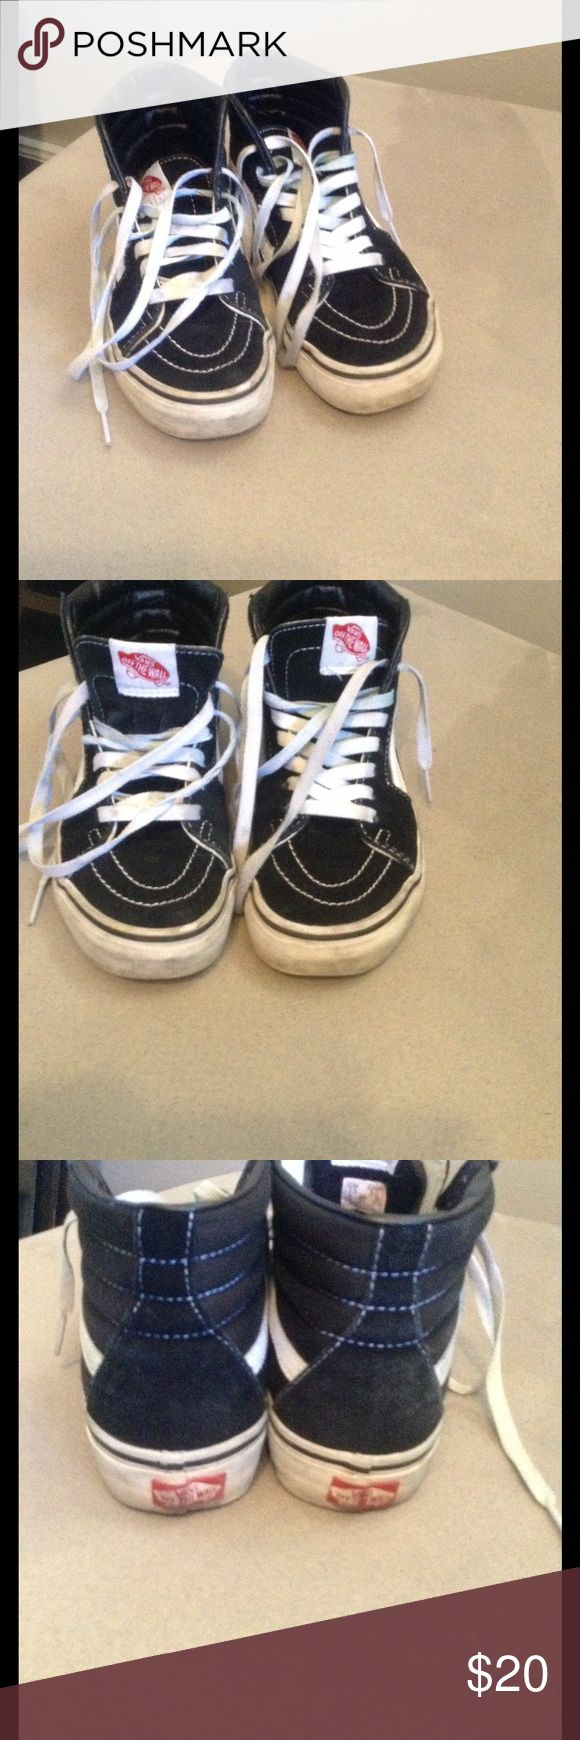 Vans sneakers black white high top size 5 Worn, see all pics. Size 5 woman's Vans Shoes Sneakers